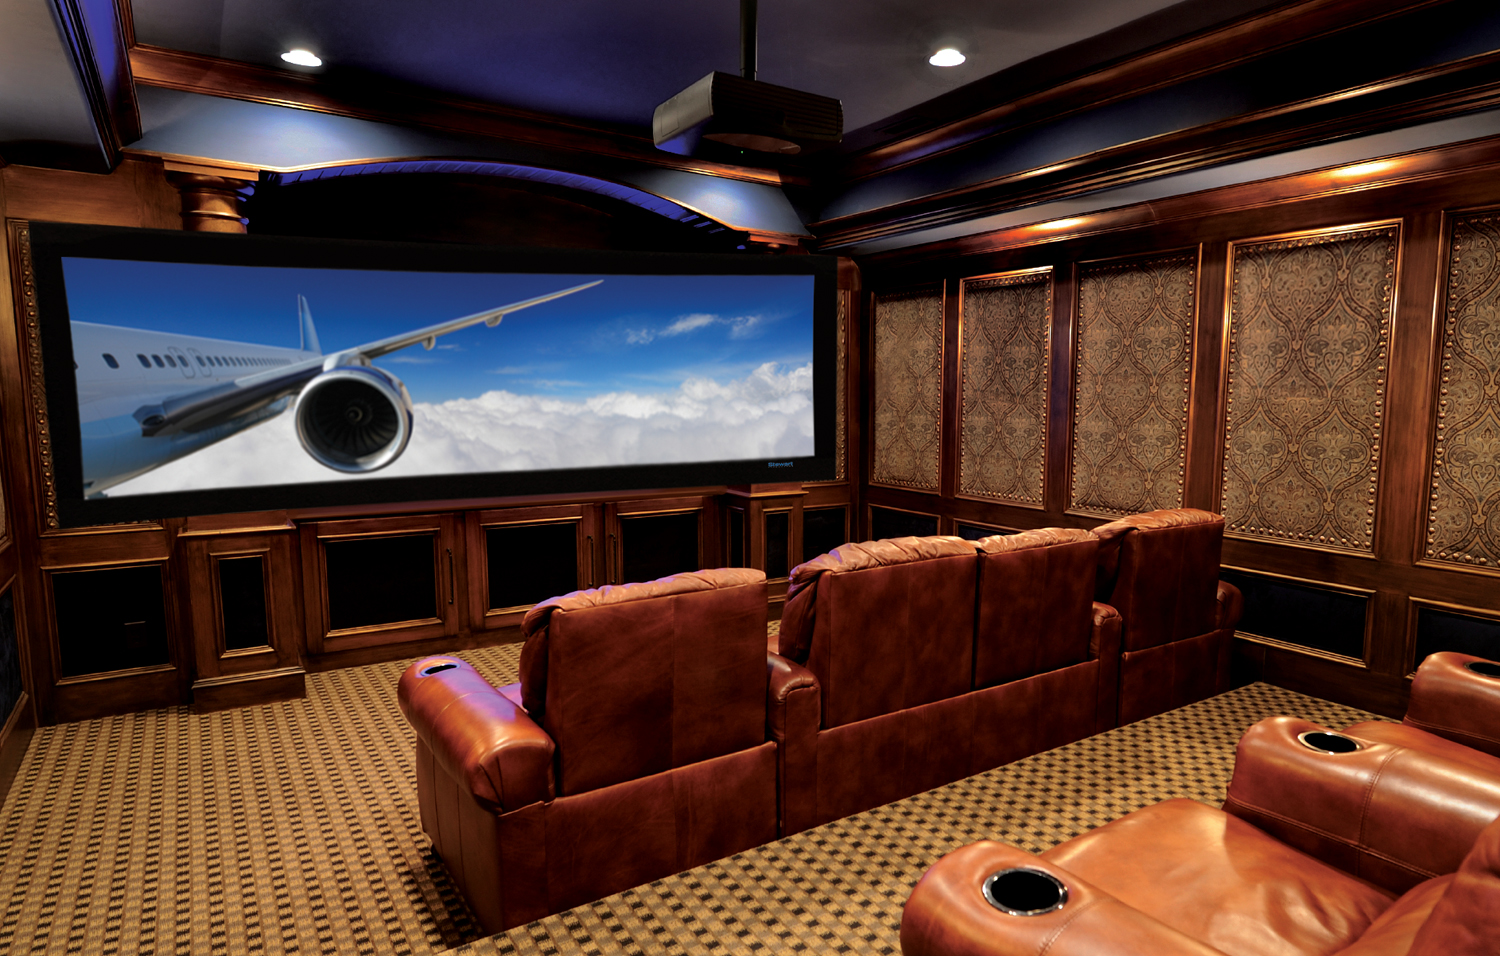 HiFi Guys Home Theater